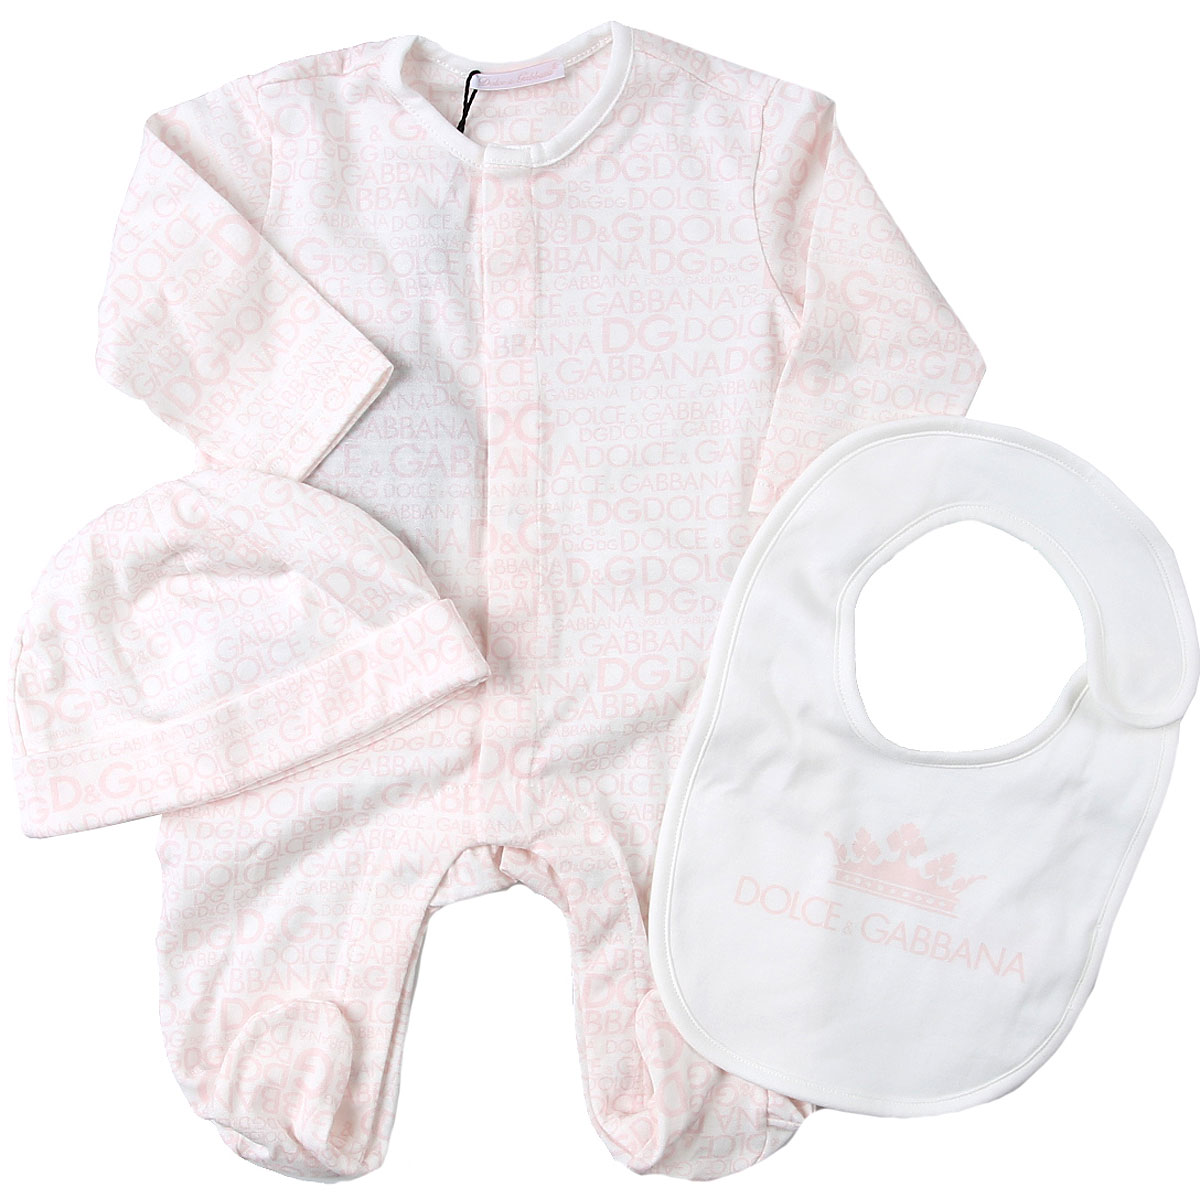 Dolce & Gabbana Baby Bodysuits & Onesies for Girls On Sale, Pink, Cotton, 2019, 3M 9M